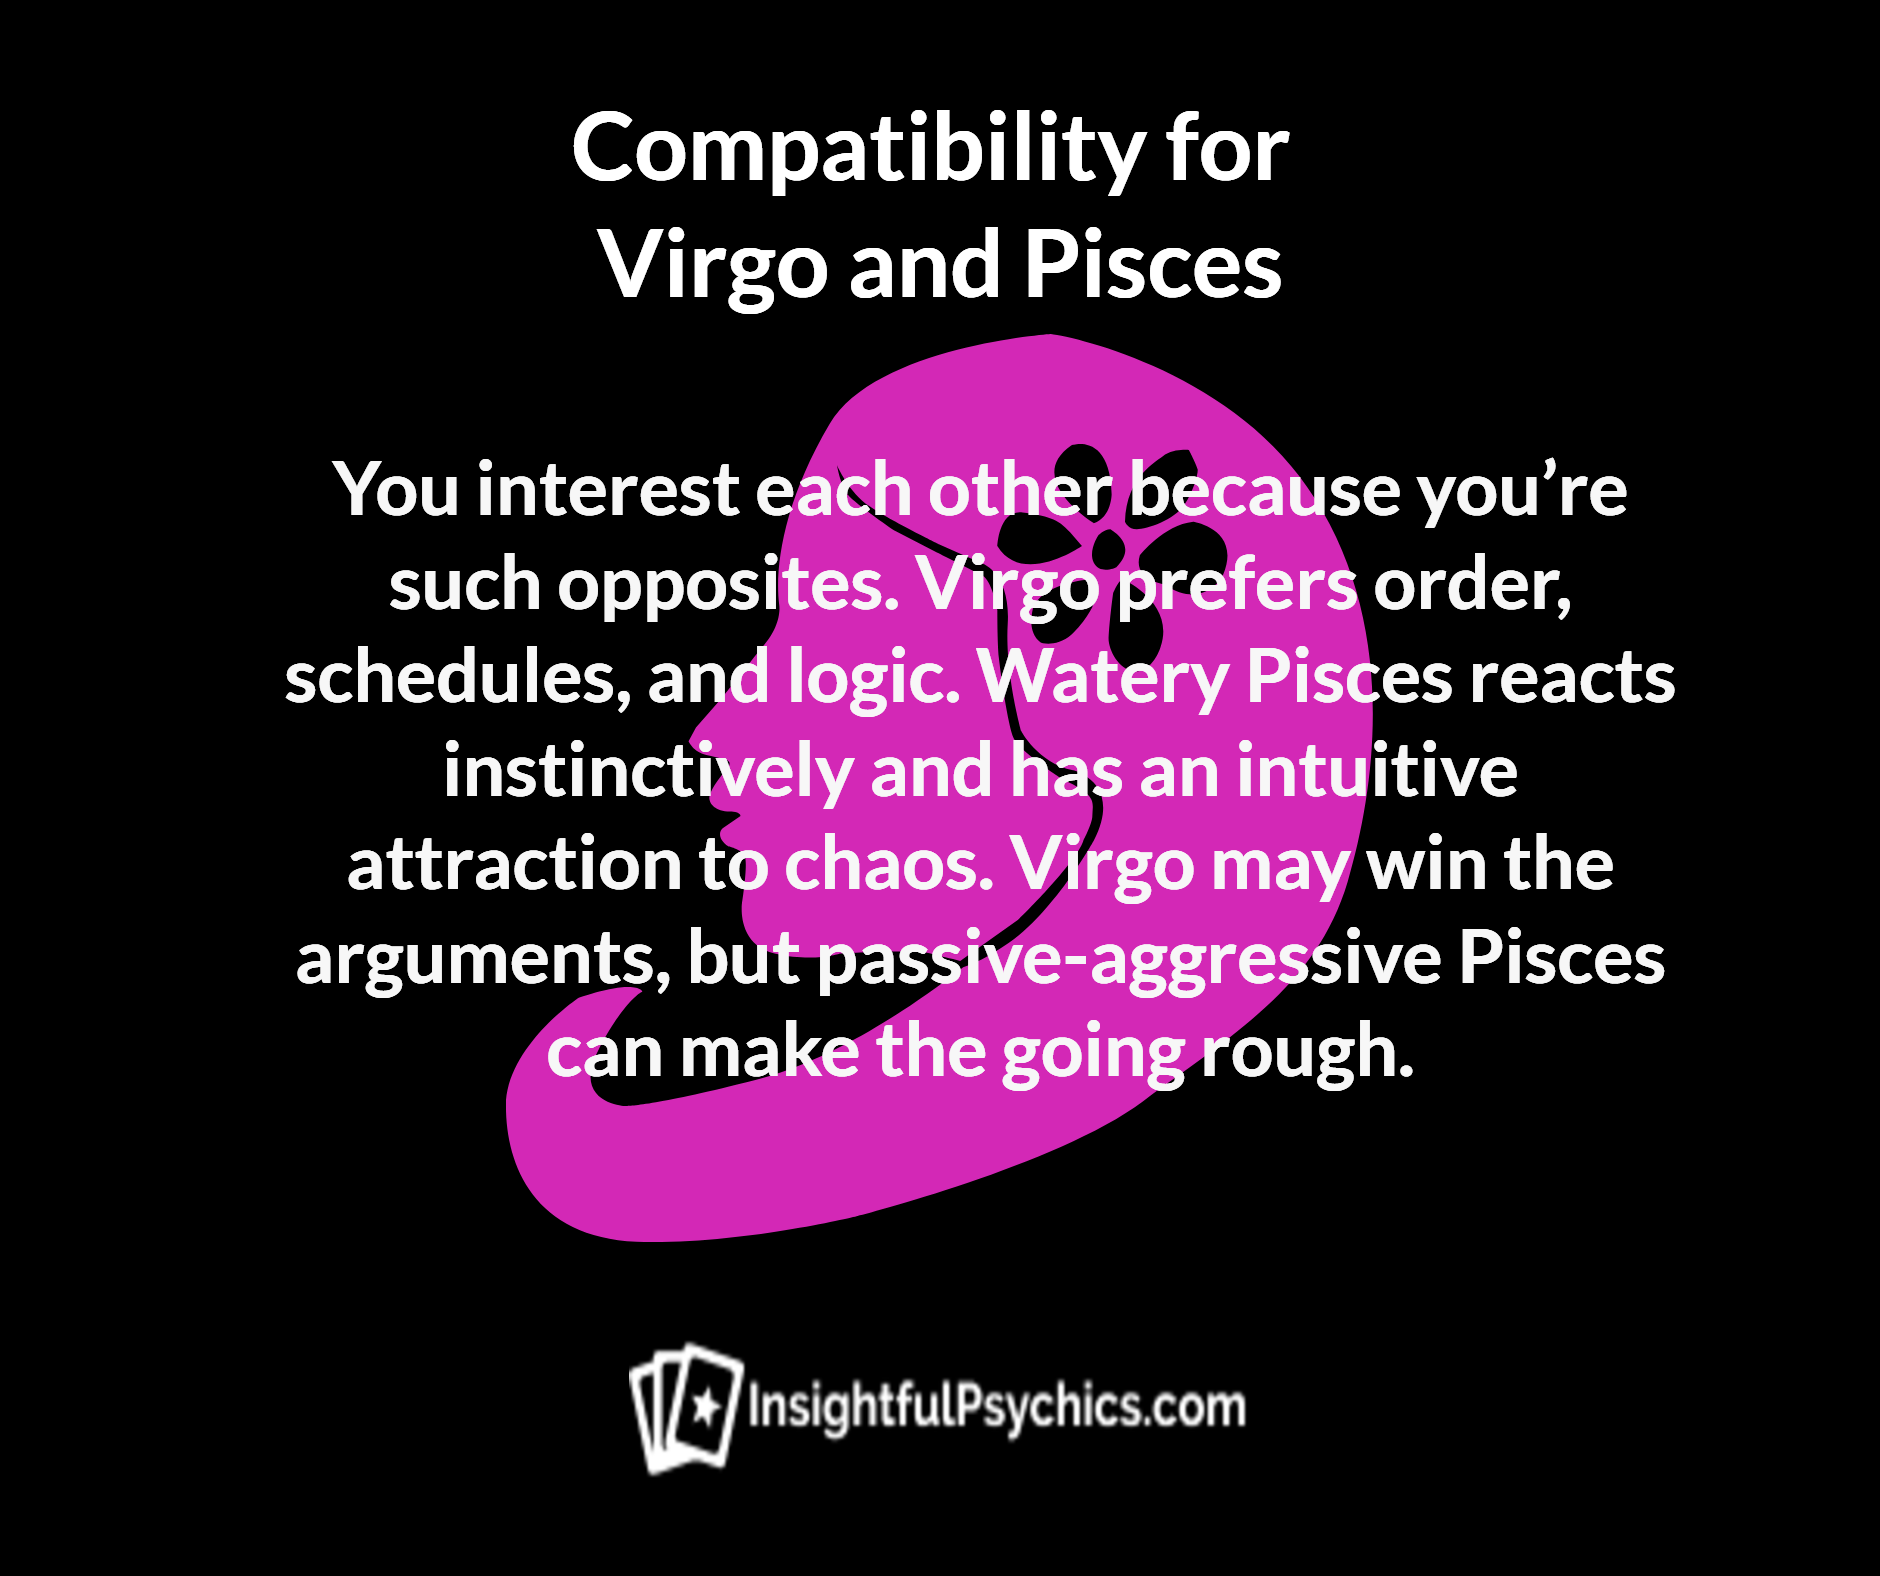 Compatibility Virgo and Pisces